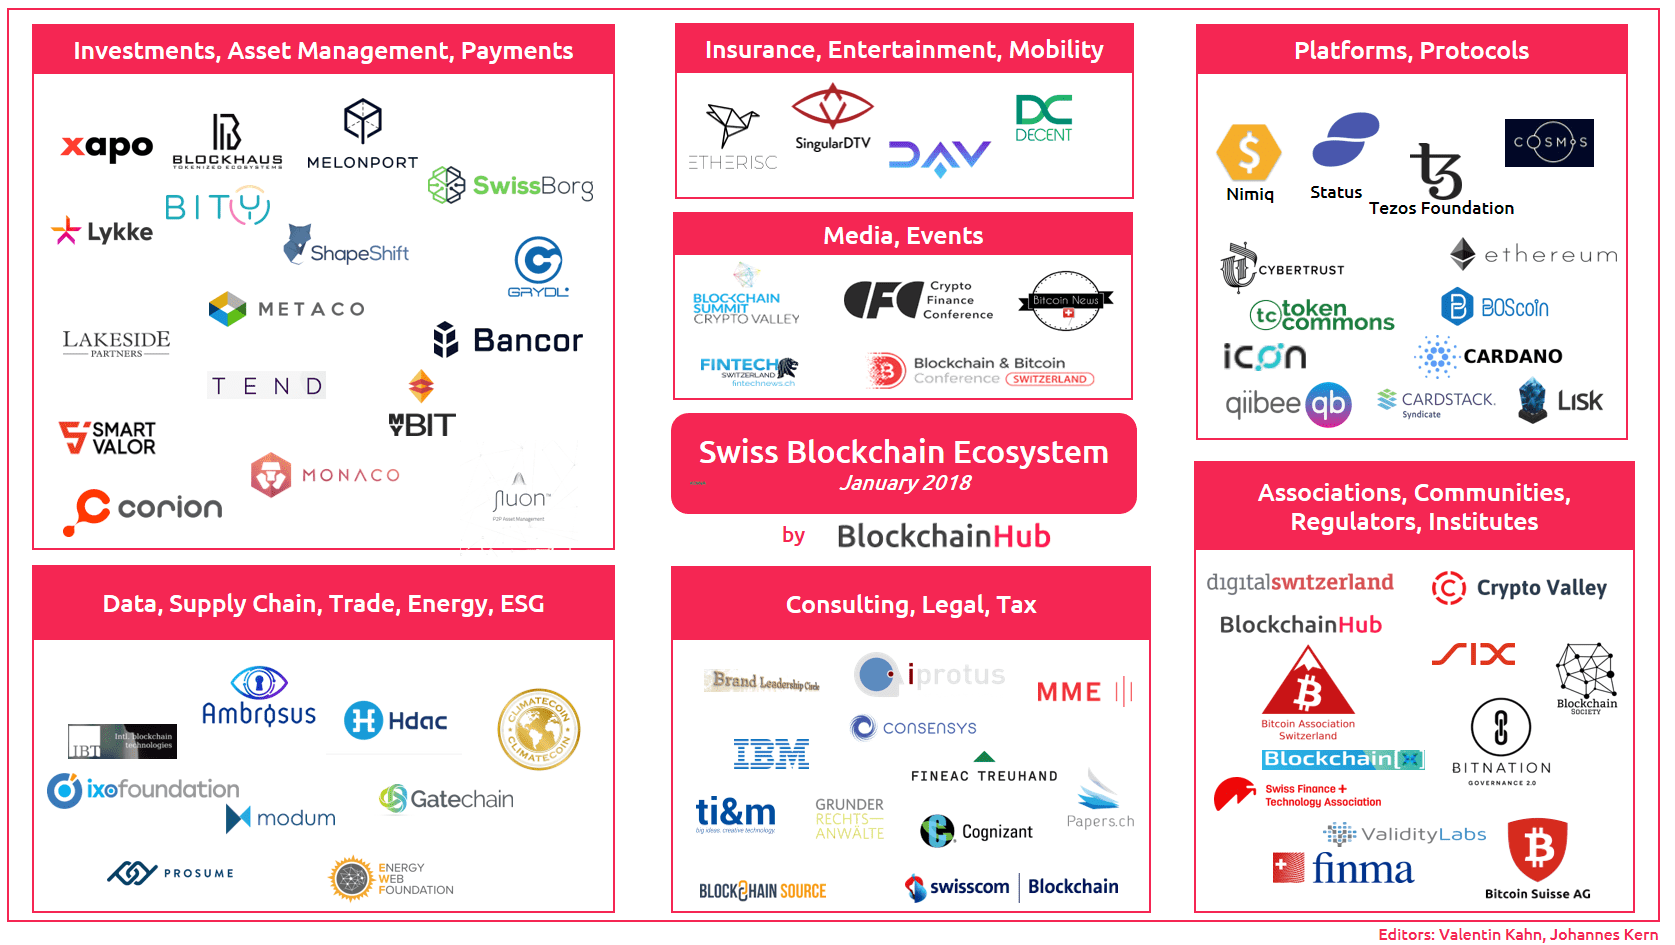 Swiss Blockchain Ecosystem January 2018